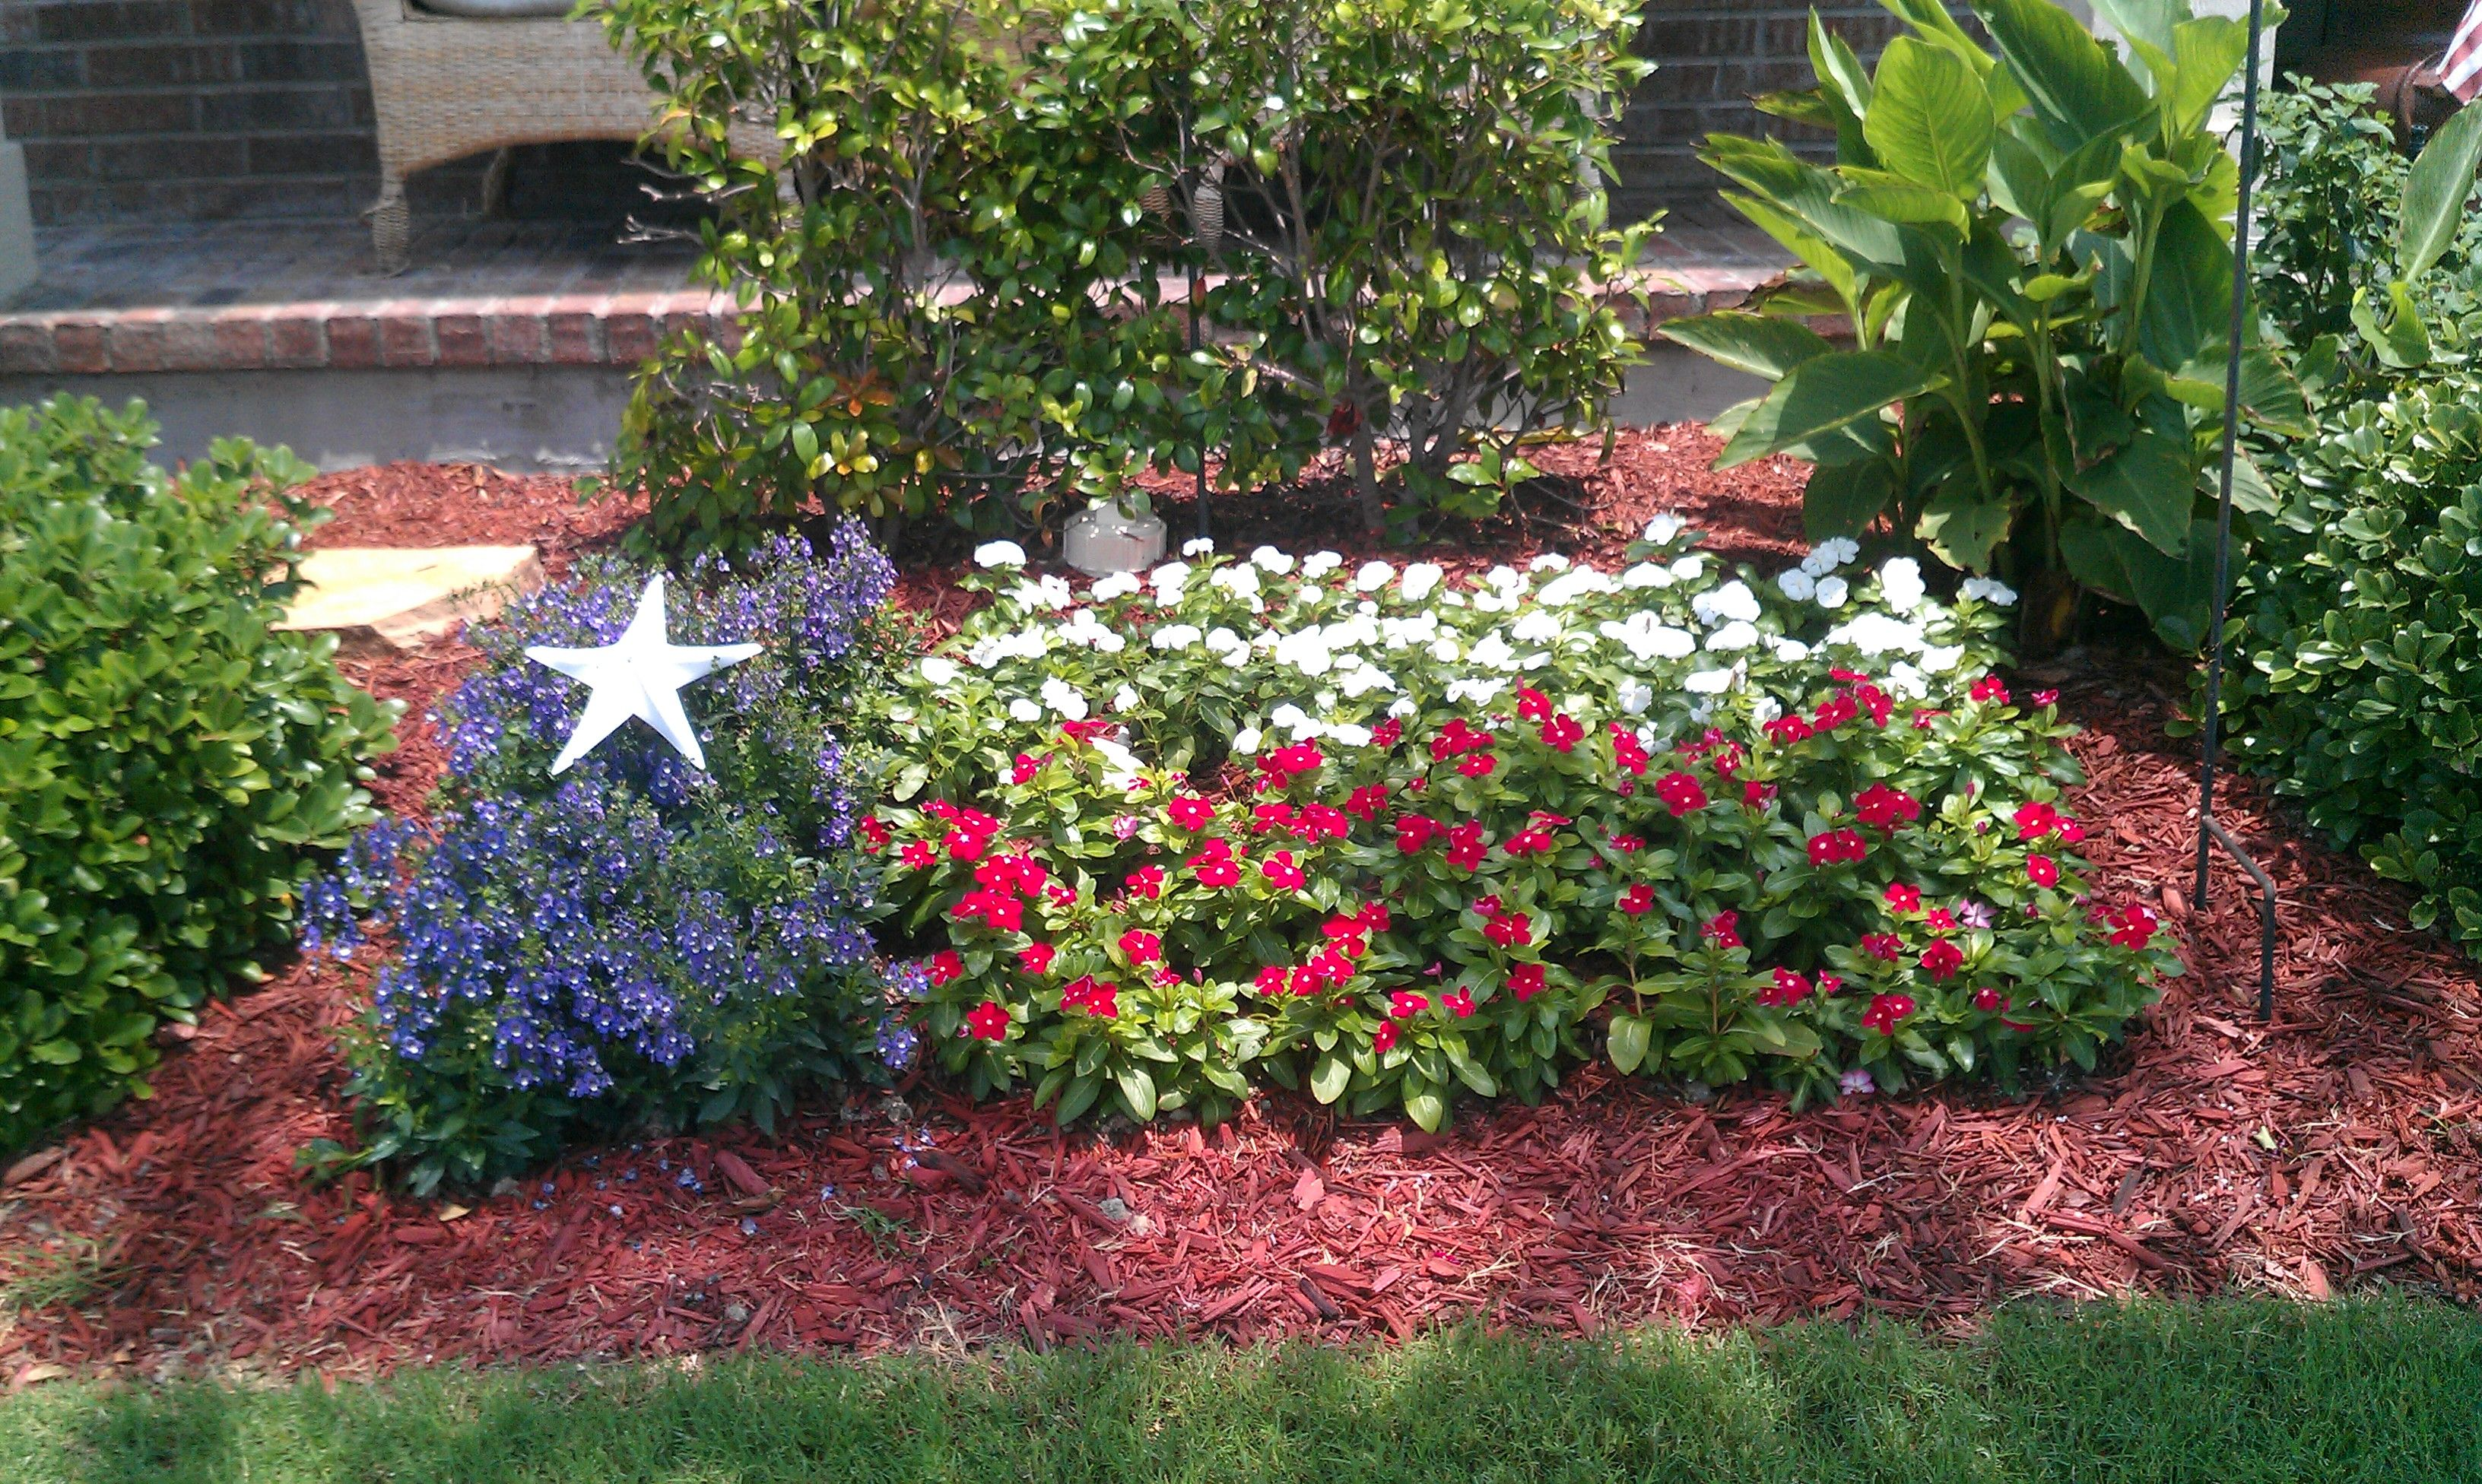 You know what they say, everything is bigger in Texas. Why not show My Flower Garden Design on design my flower bed, design your own garden flower, design poetry, design my vegetable garden, design my shade garden, bonsai trees garden,